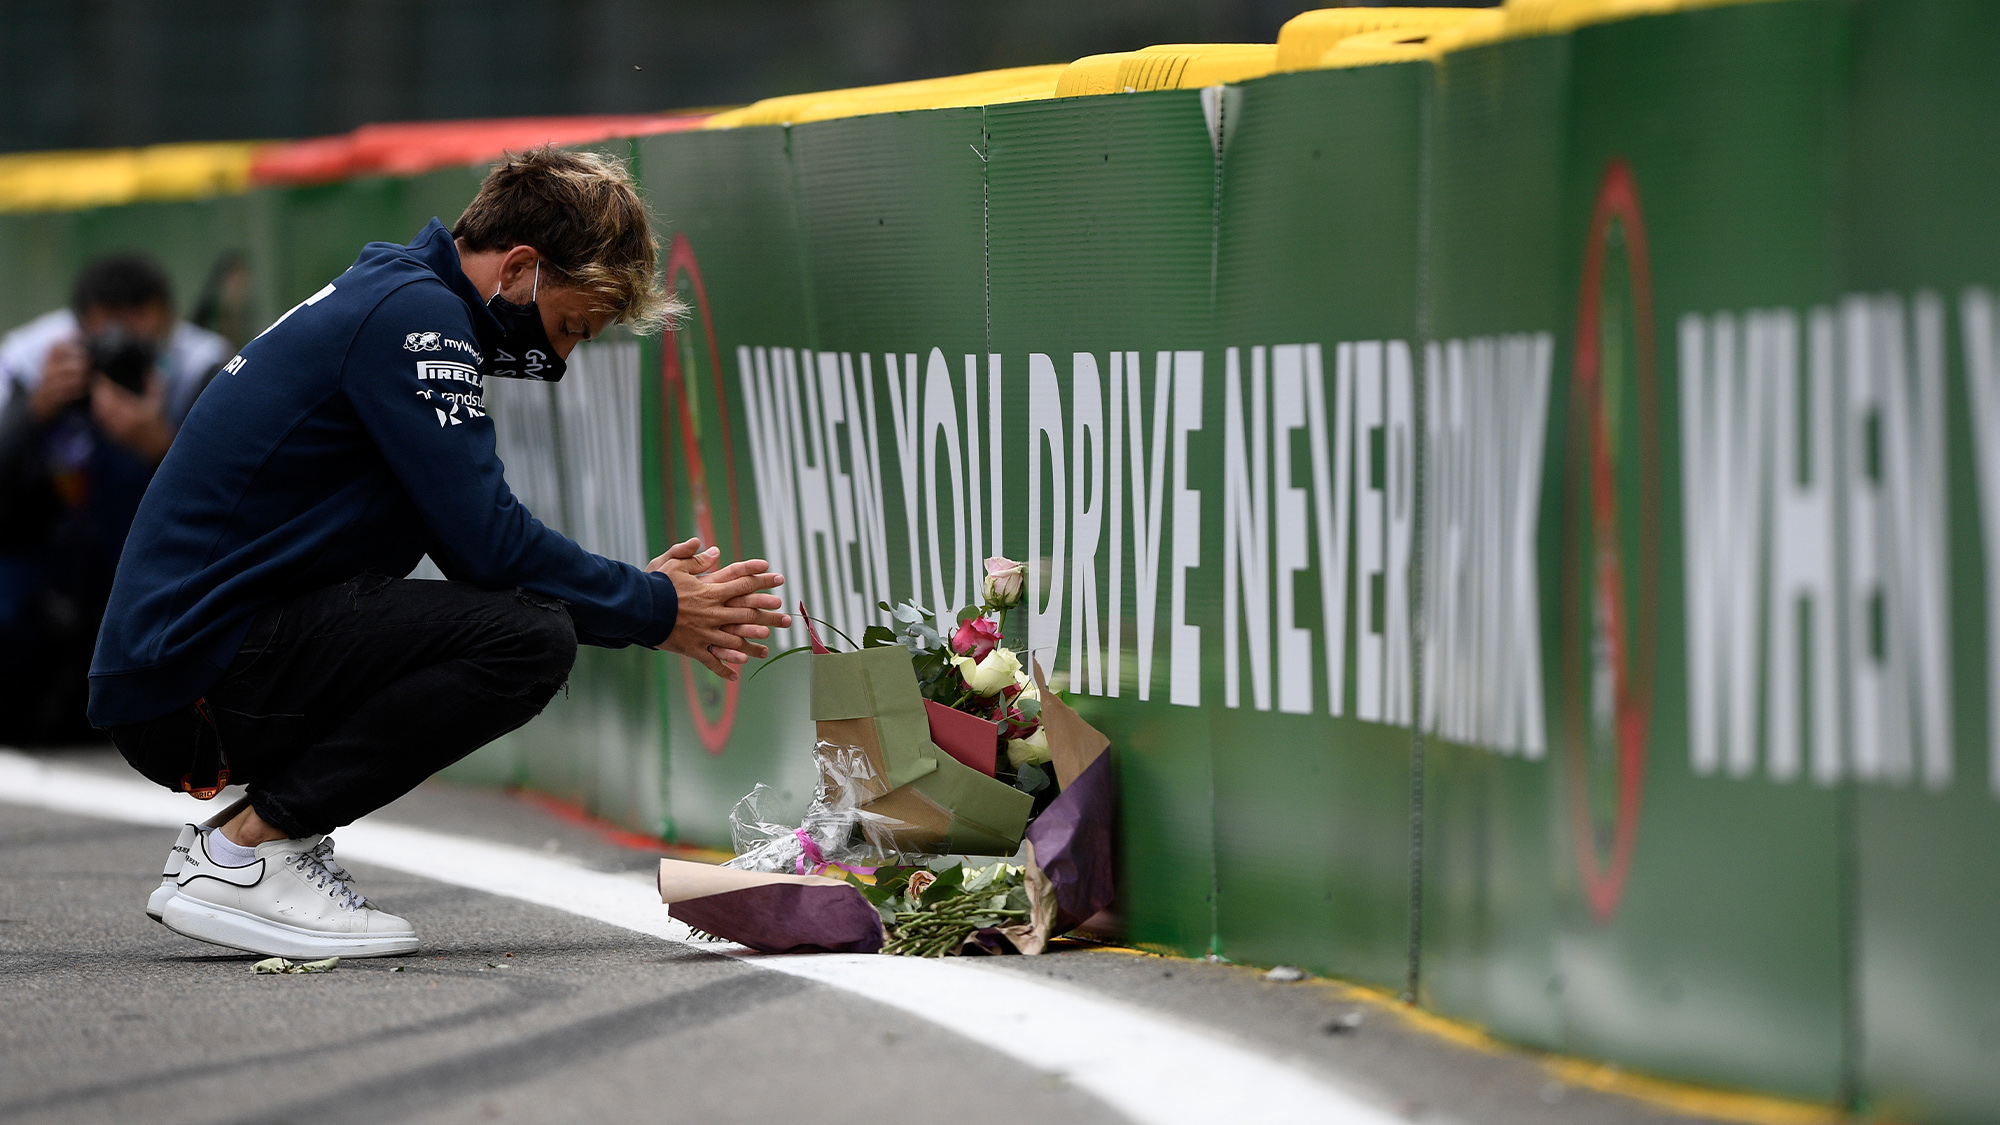 Pierre Gasly lays flowers at Spa Francorchamps in 2020 at the spot where Anthoine Hubert was killed